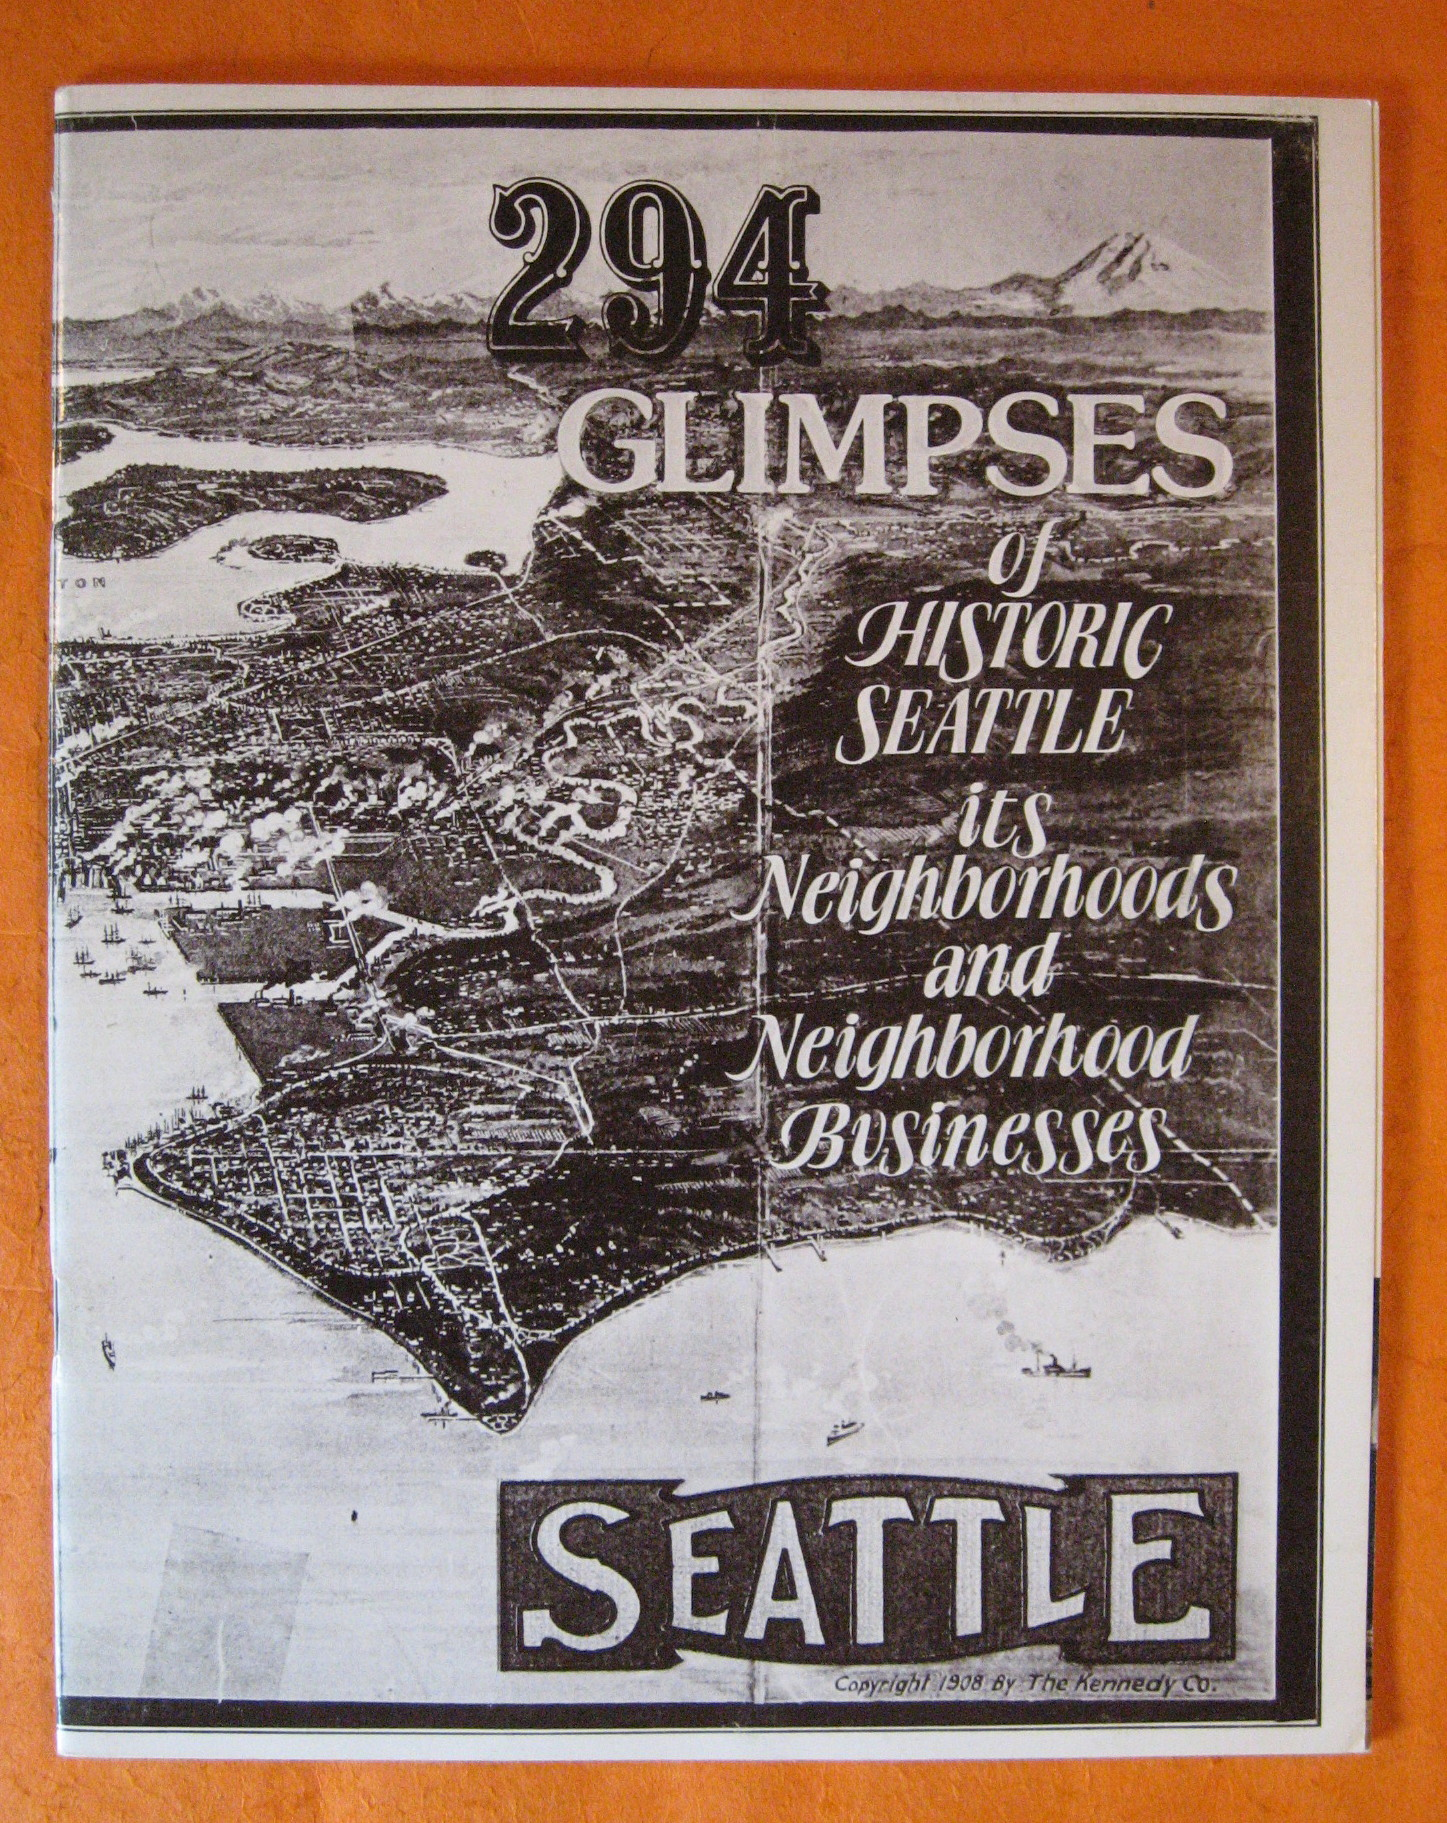 294 Glimpses of Historic Seattle, Its Neighborhoods and Neighborhood Businesses, Dorpat, Paul